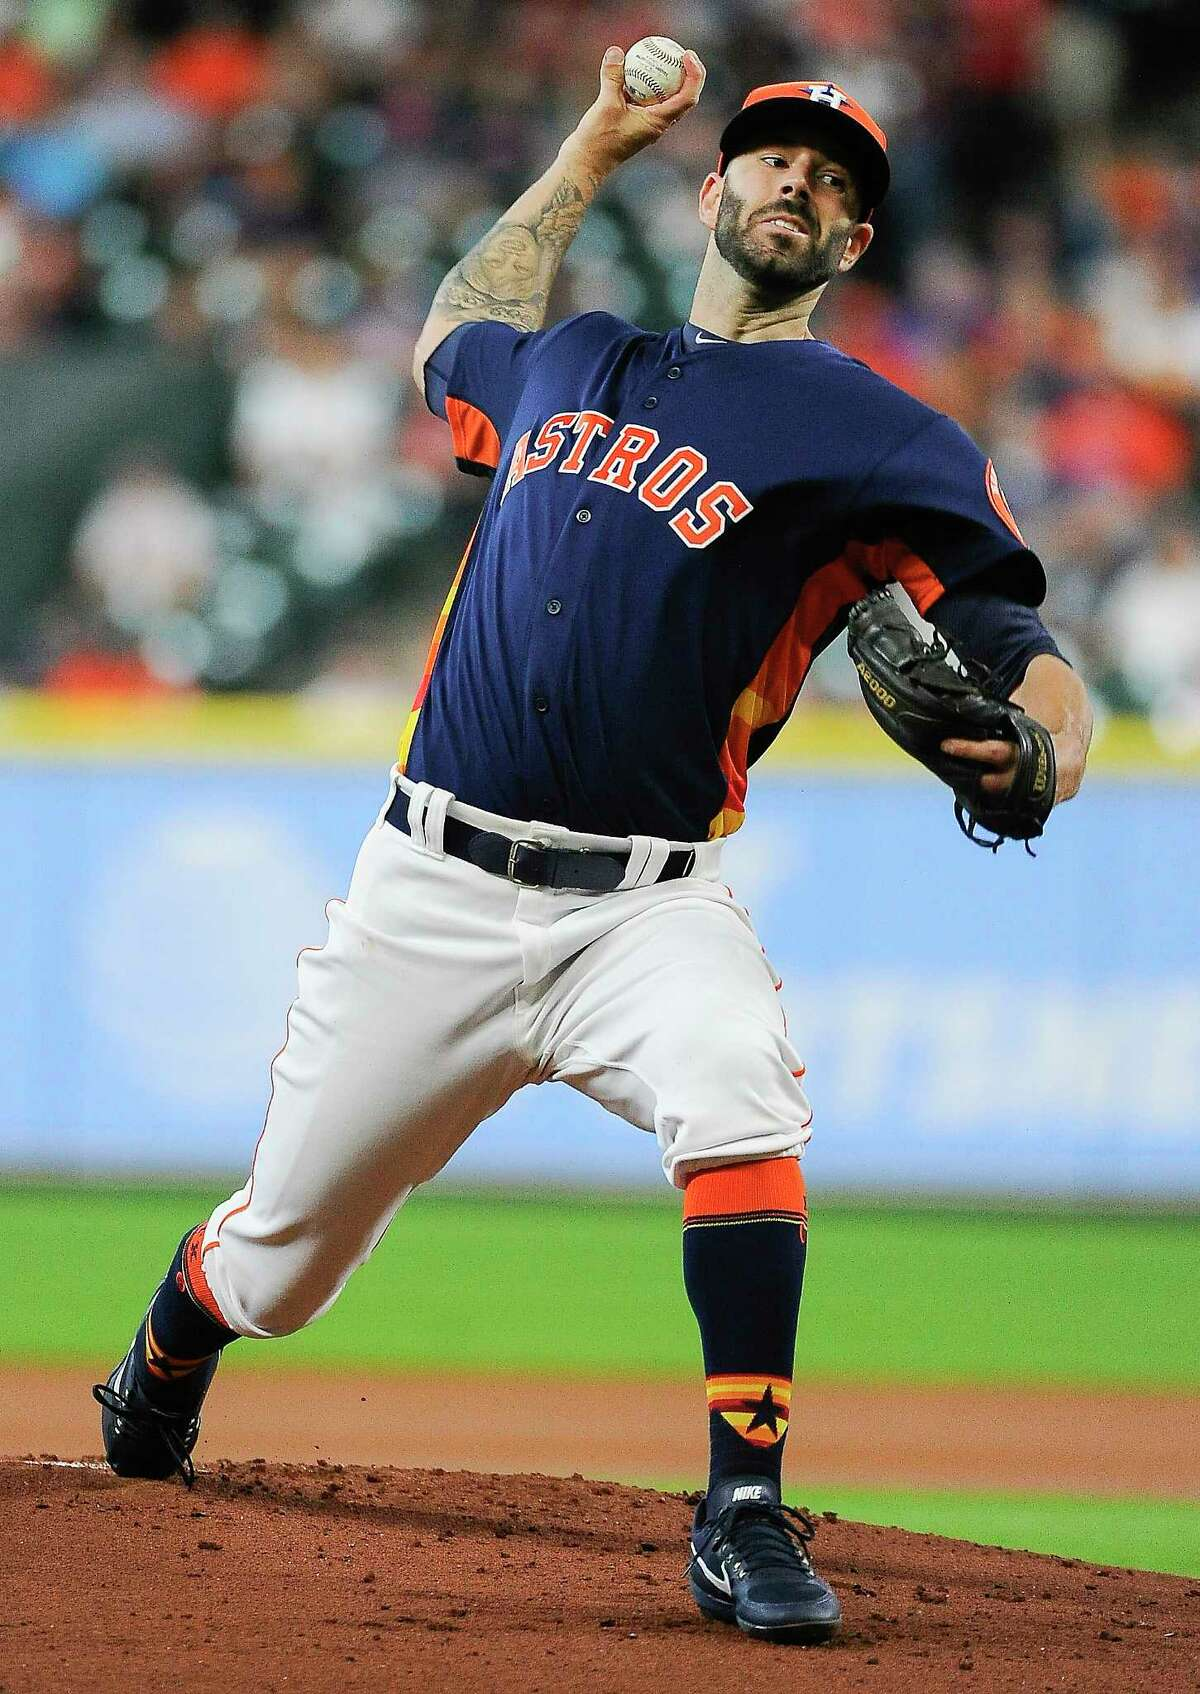 Houston Astros starting pitcher Mike Fiers delivers during the first inning of a baseball game against the Toronto Blue Jays, Sunday, Aug. 6, 2017, in Houston. (AP Photo/Eric Christian Smith)